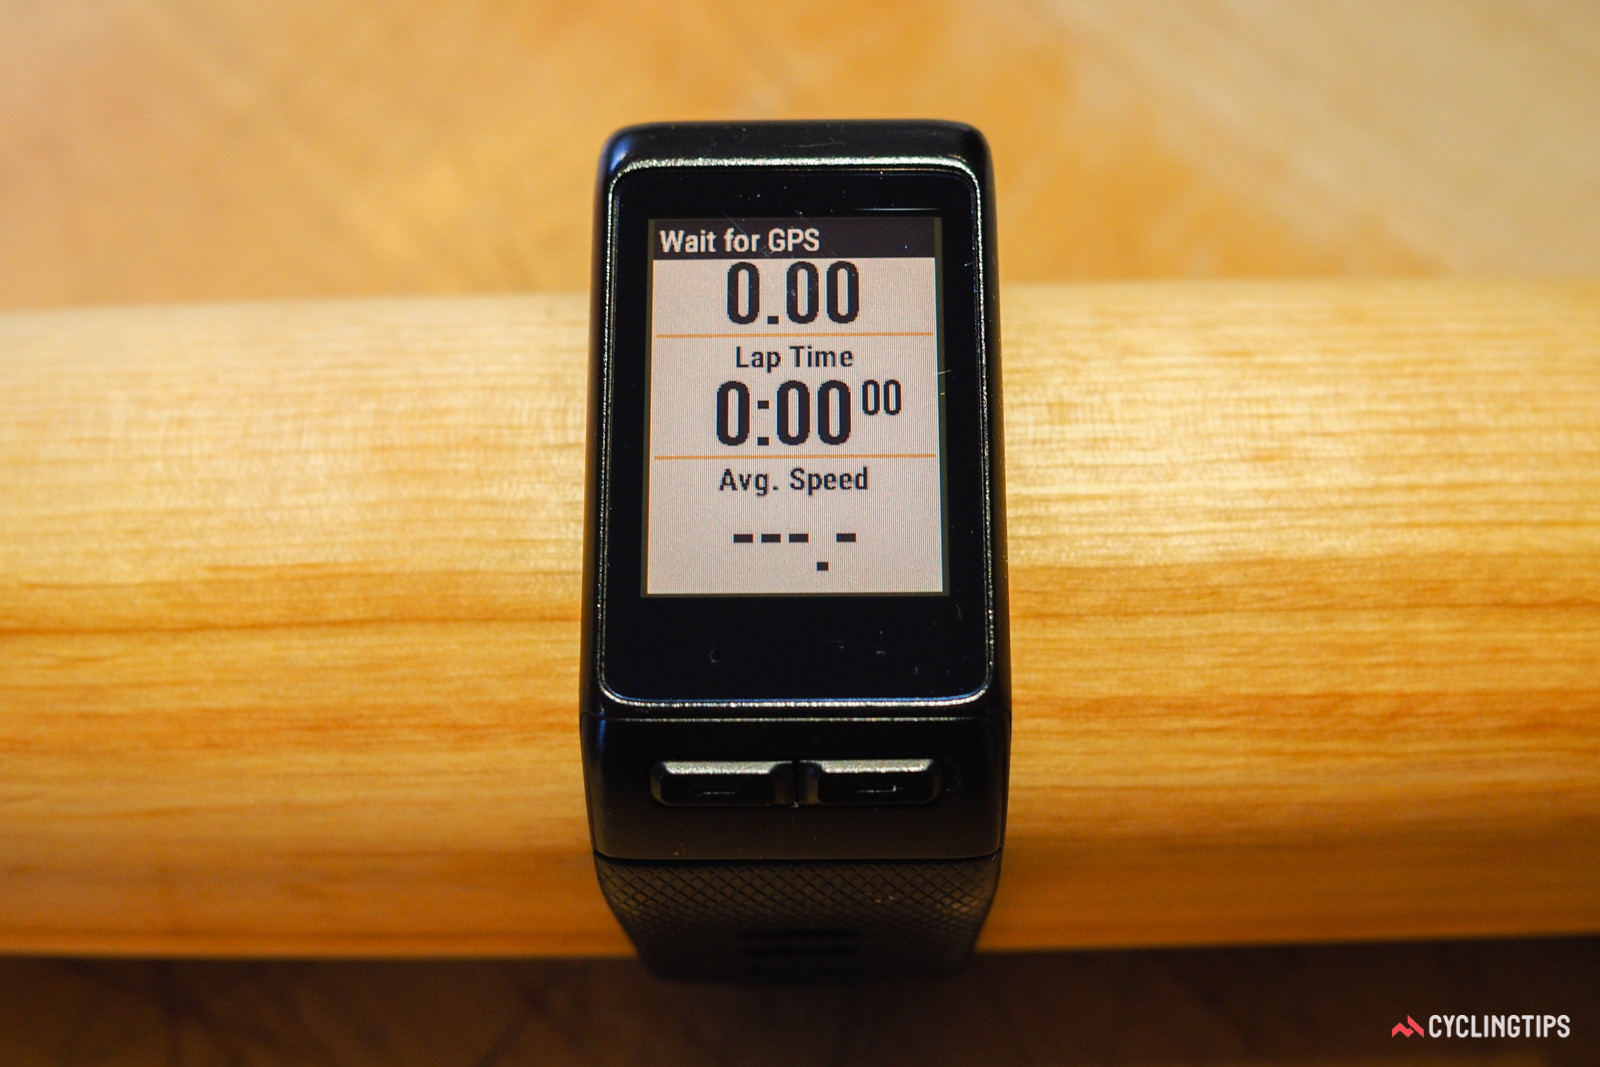 Switching between the different cycling data screens on the Garmin Vivoactive HR is done with simple swipes up and down.